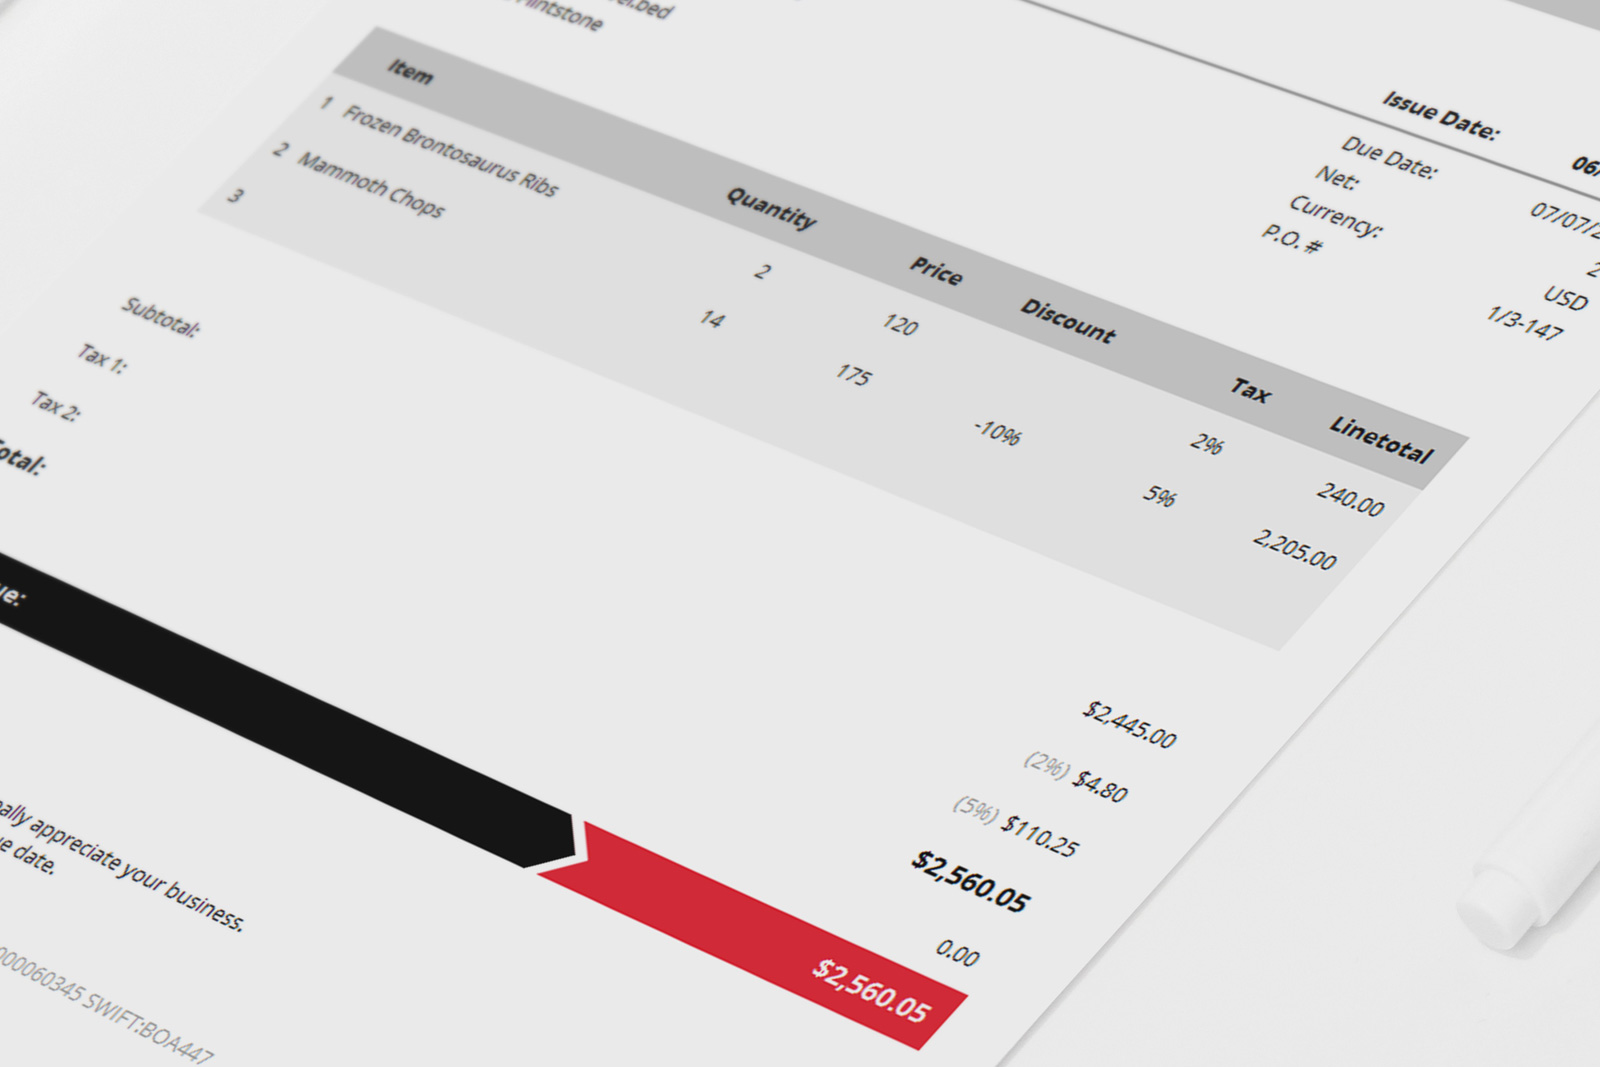 High Quality ... And Armo Is An Easy To Use Invoice Template With Elegant, Simple, And Idea Beautiful Invoices